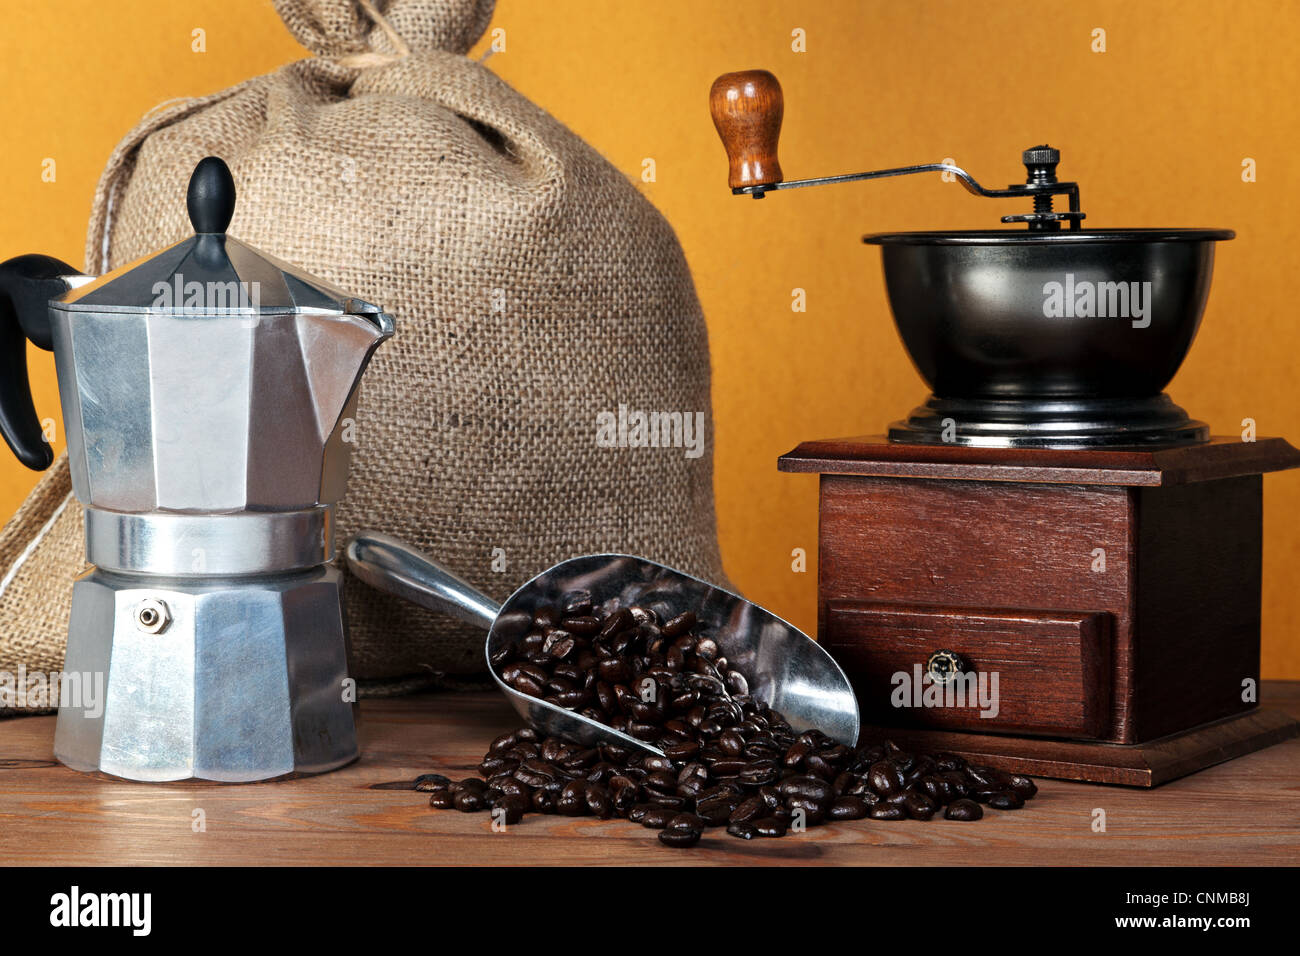 Still life photo of a caffettiera or moka pot with traditional coffee grinder hessian sack and arabica beans in - Stock Image